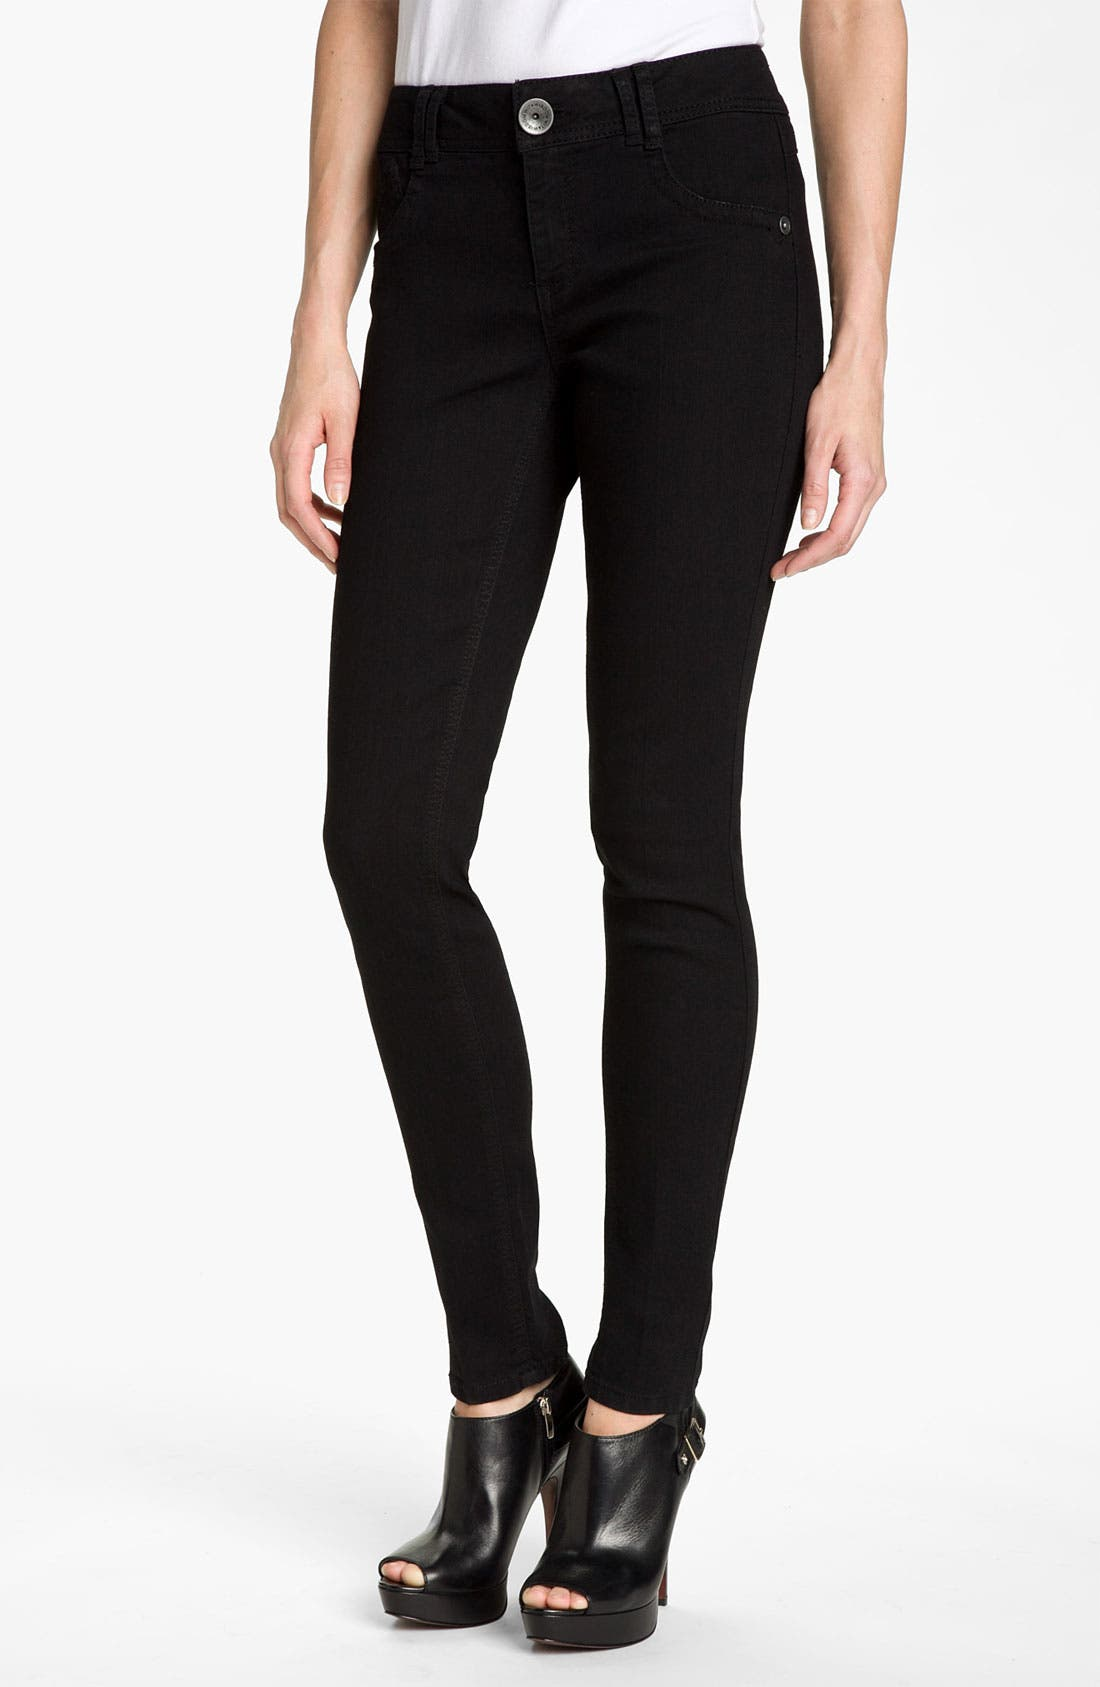 Main Image - Wit & Wisdom Denim Leggings (Black Wash) (Nordstrom Exclusive)